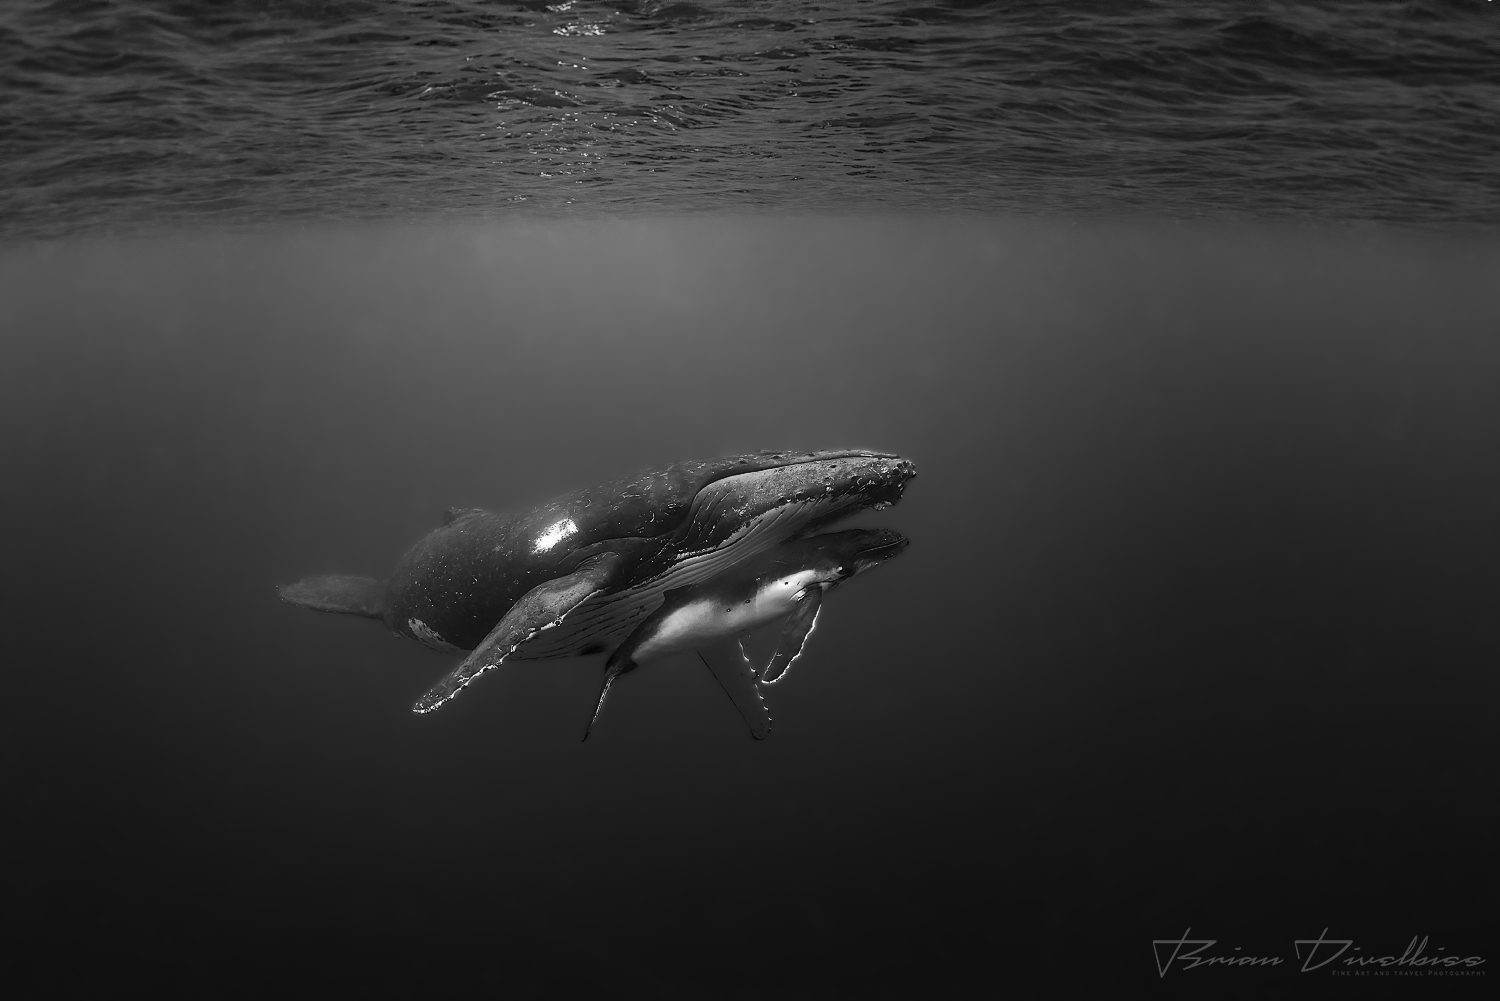 Baby humpback swims below humpback whale under the surface in Vava'u, Tonga in black and white.